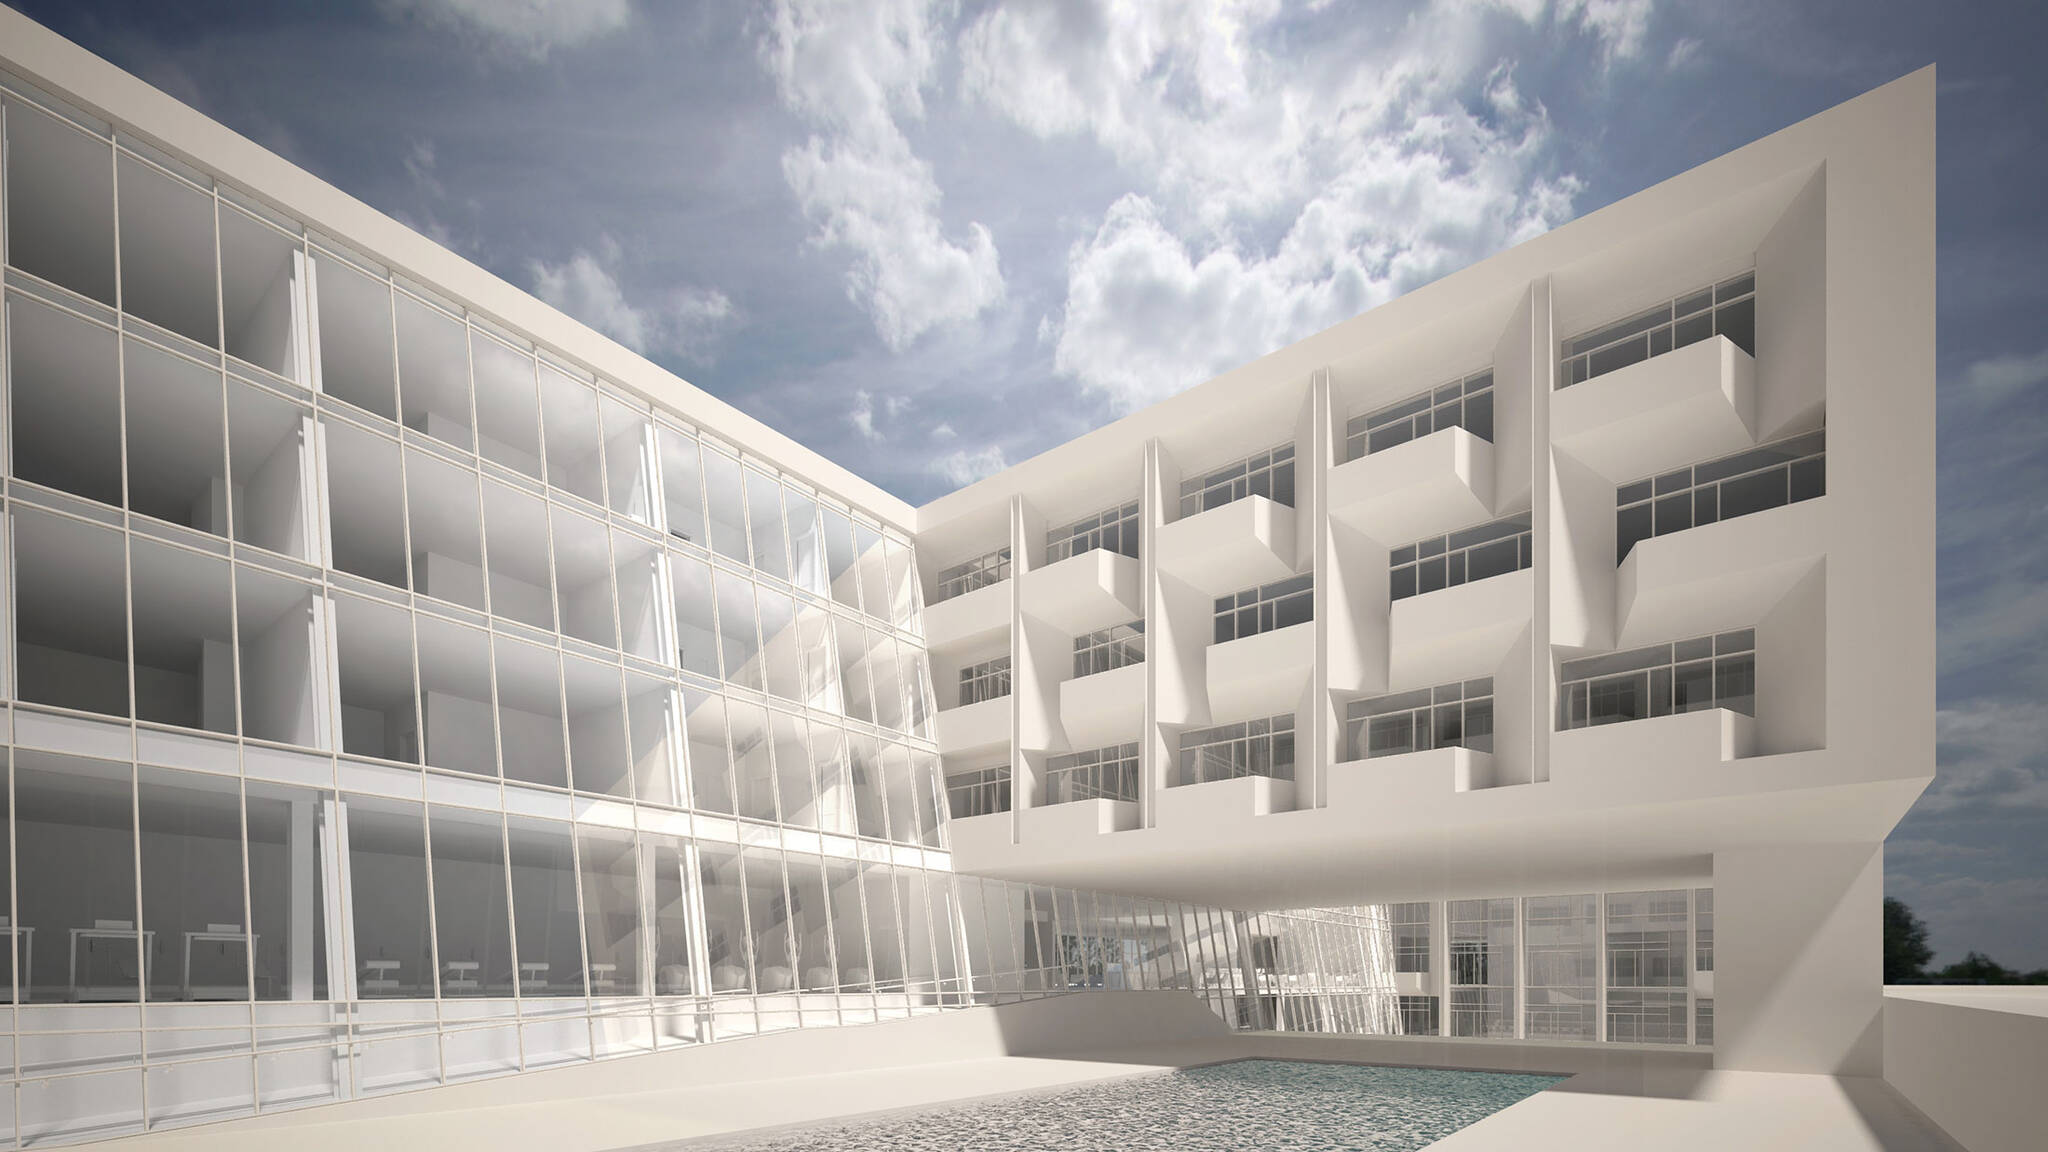 Architectural rendering of the Jericho Plaza Hotel project in Jericho, New York designed by the architecture studio Danny Forster & Architecture